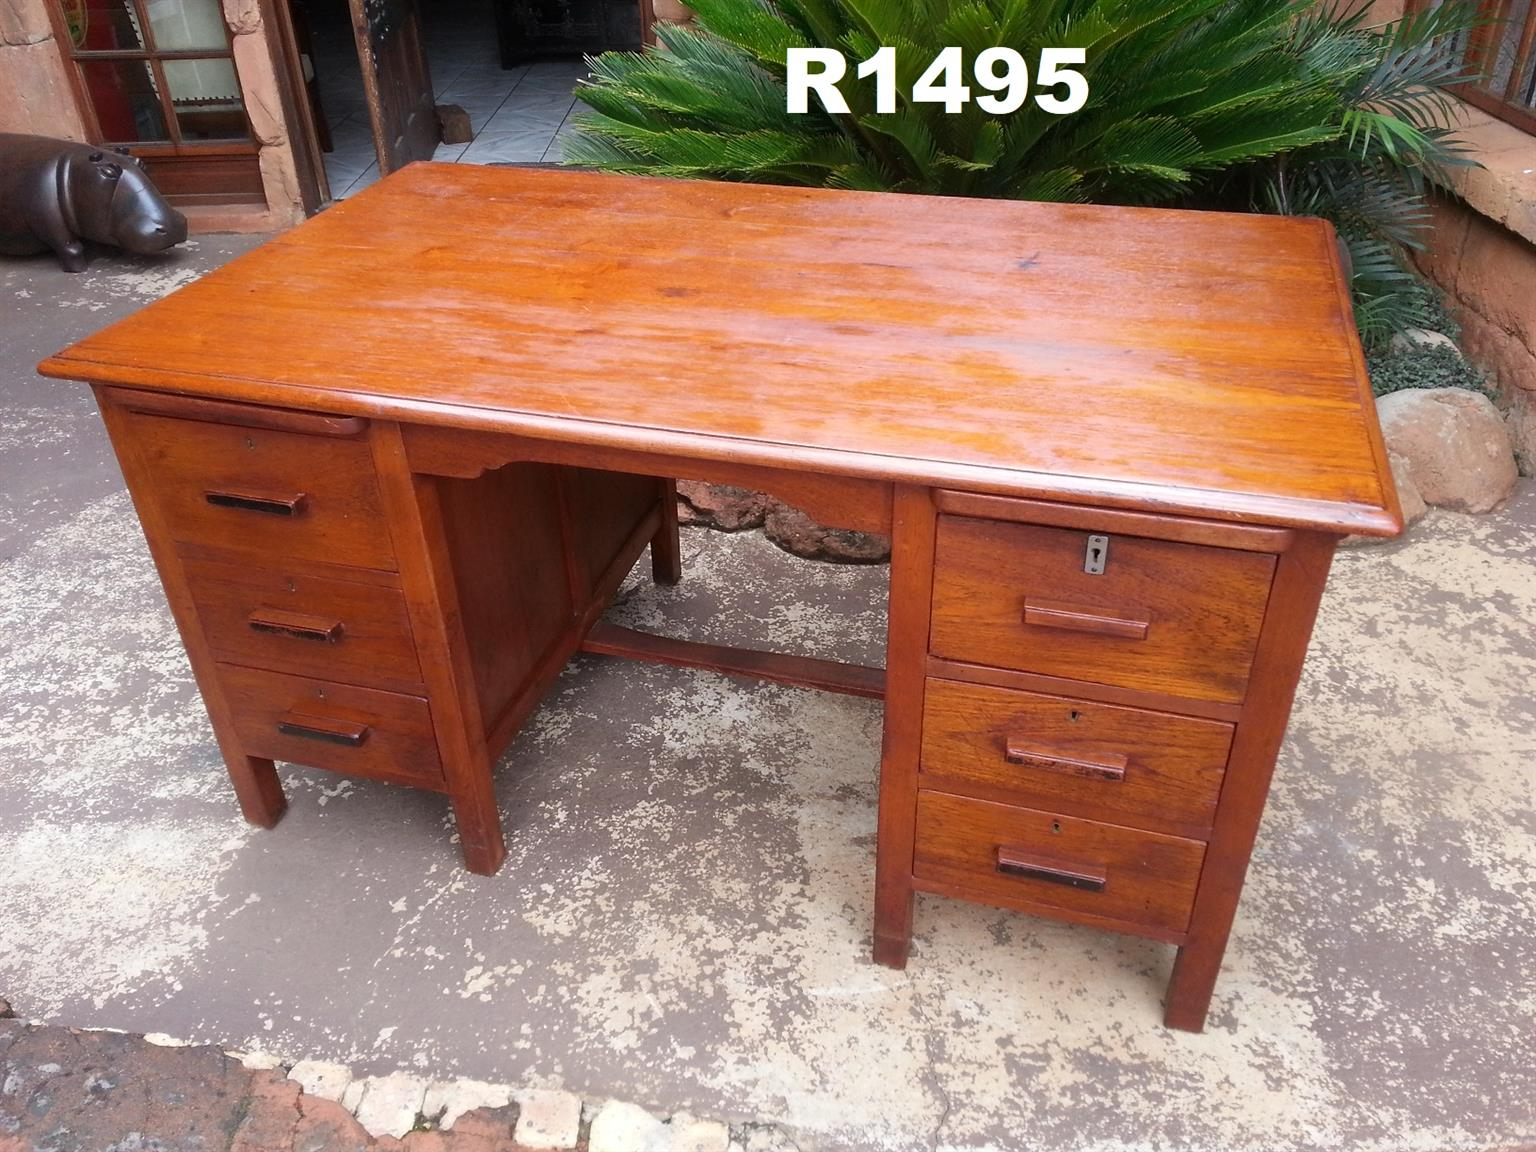 Burmese Teak Desk with 6 Drawers (1525x900x790)